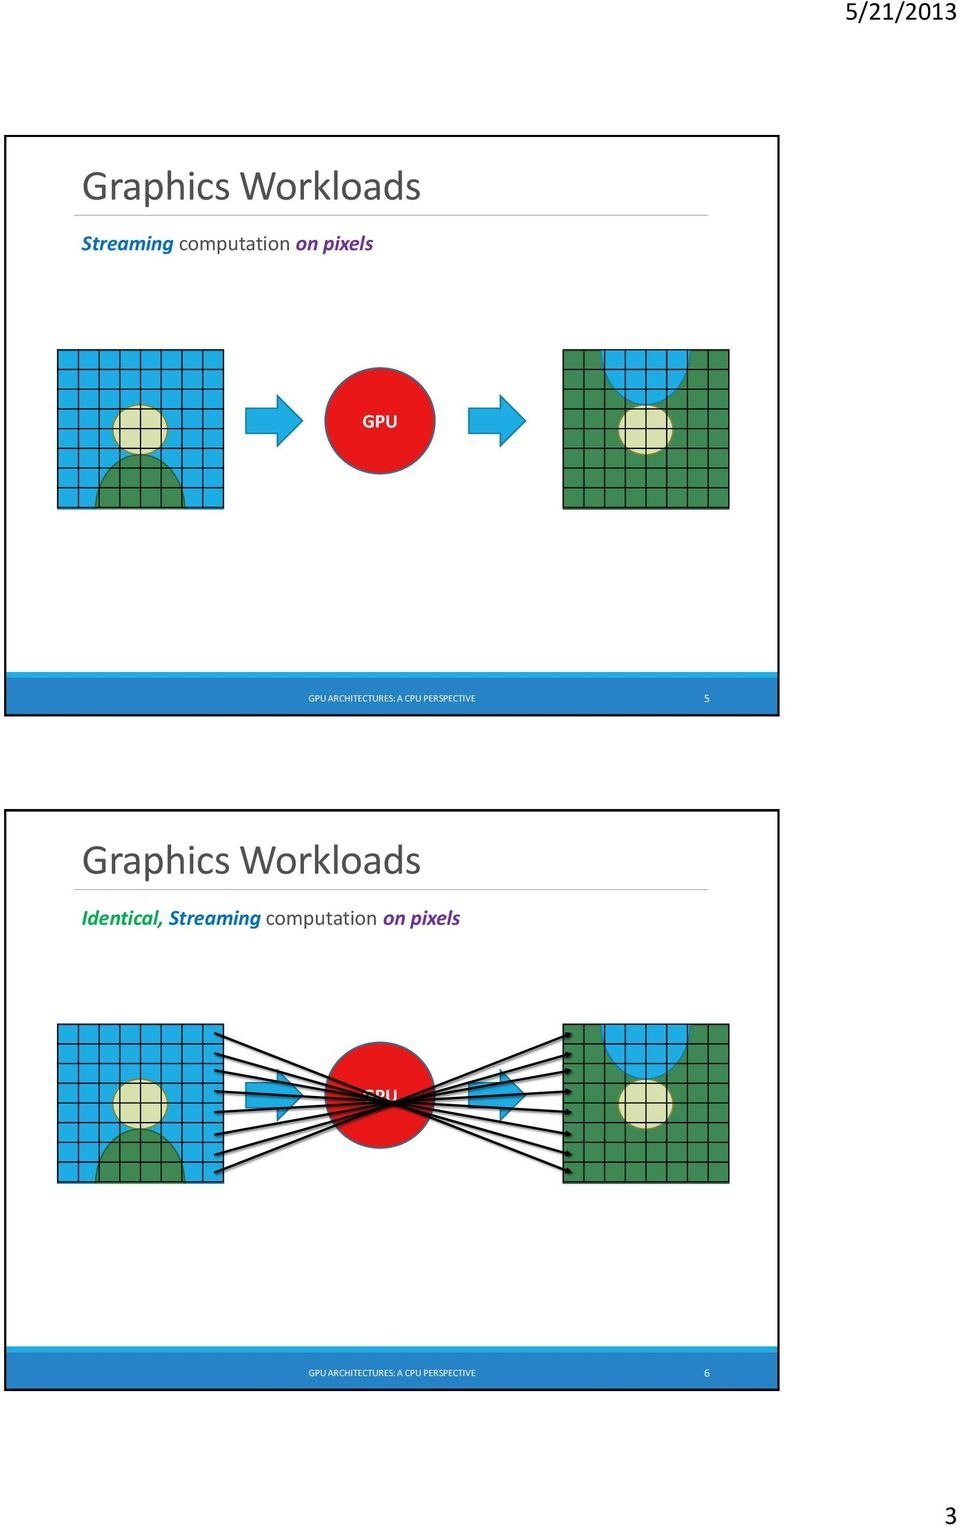 Graphics Workloads Identical, Streaming